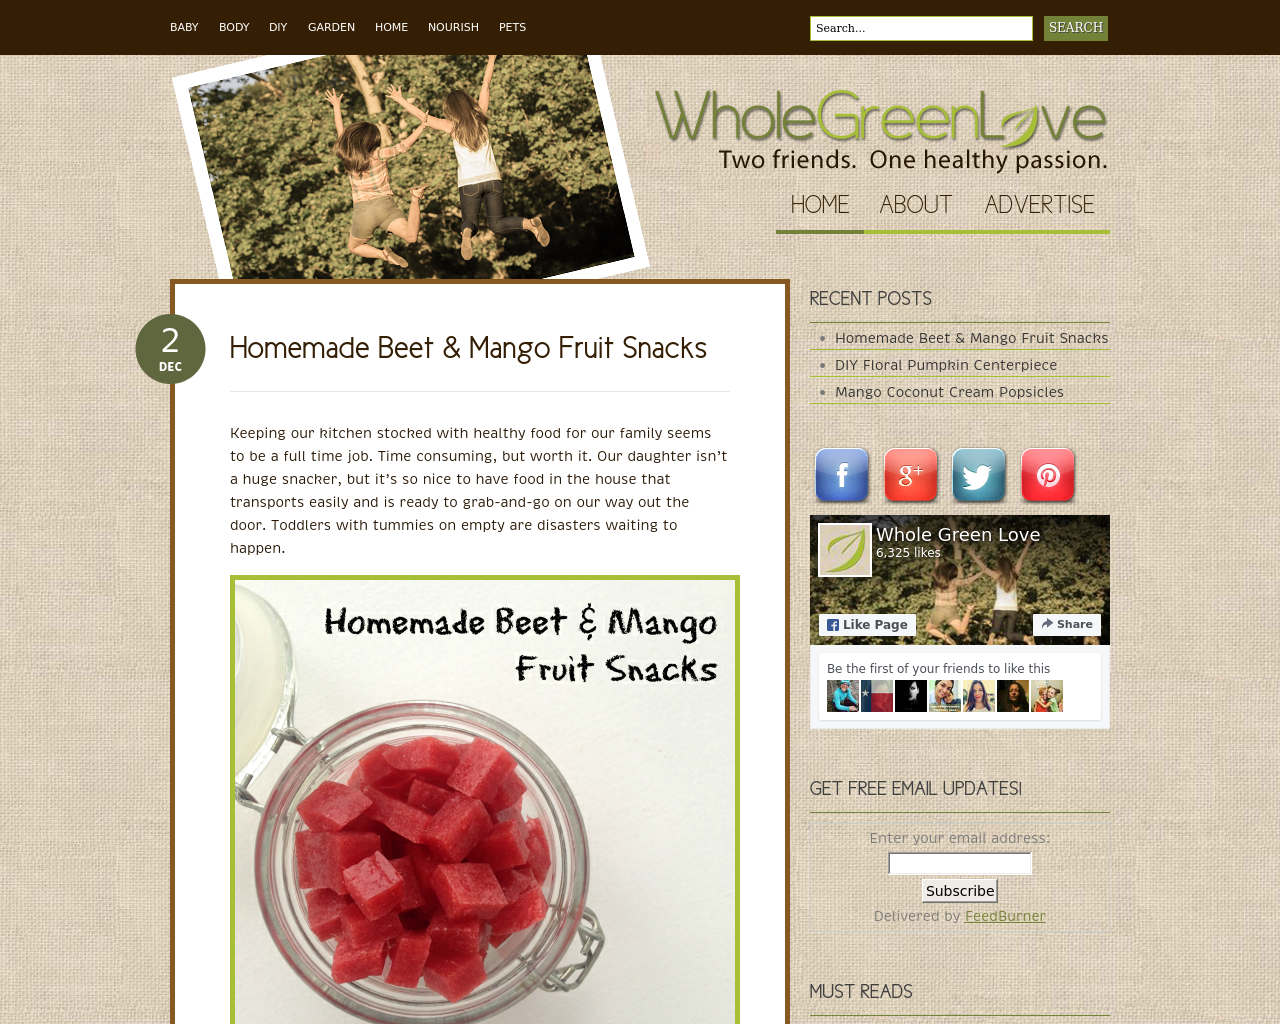 Whole-Green-Love-Advertising-Reviews-Pricing